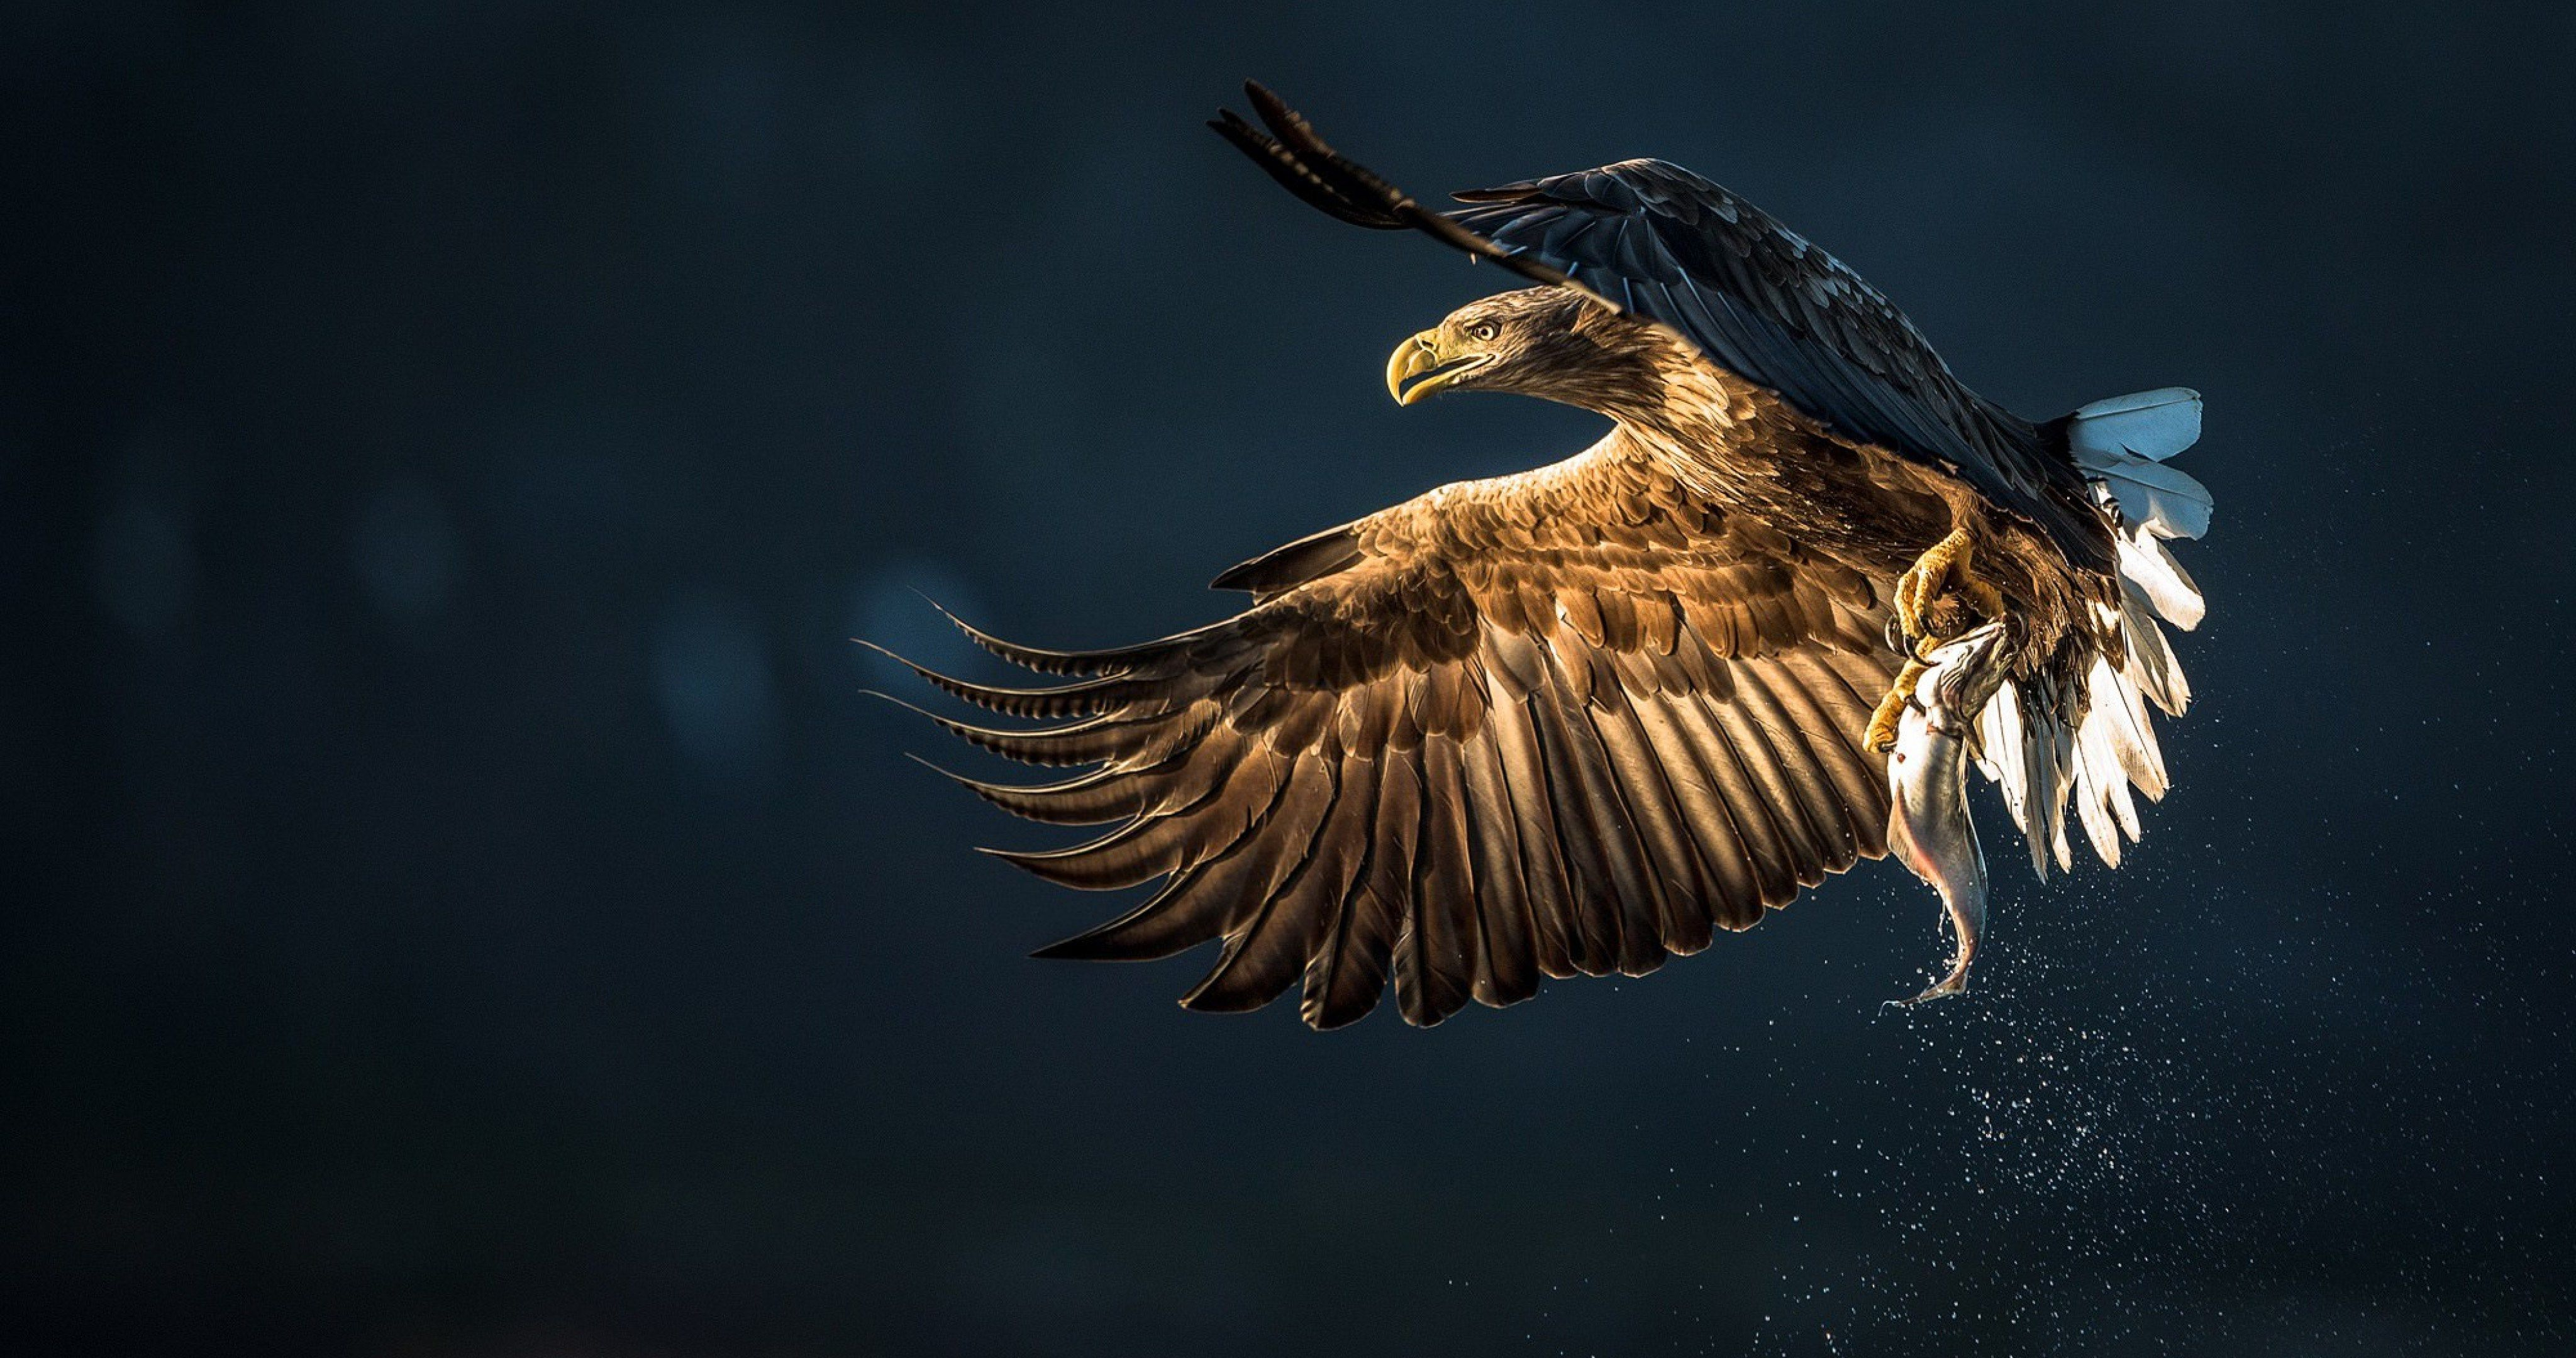 eagle bird catch fish 4k ultra hd wallpaper Eagle pictures